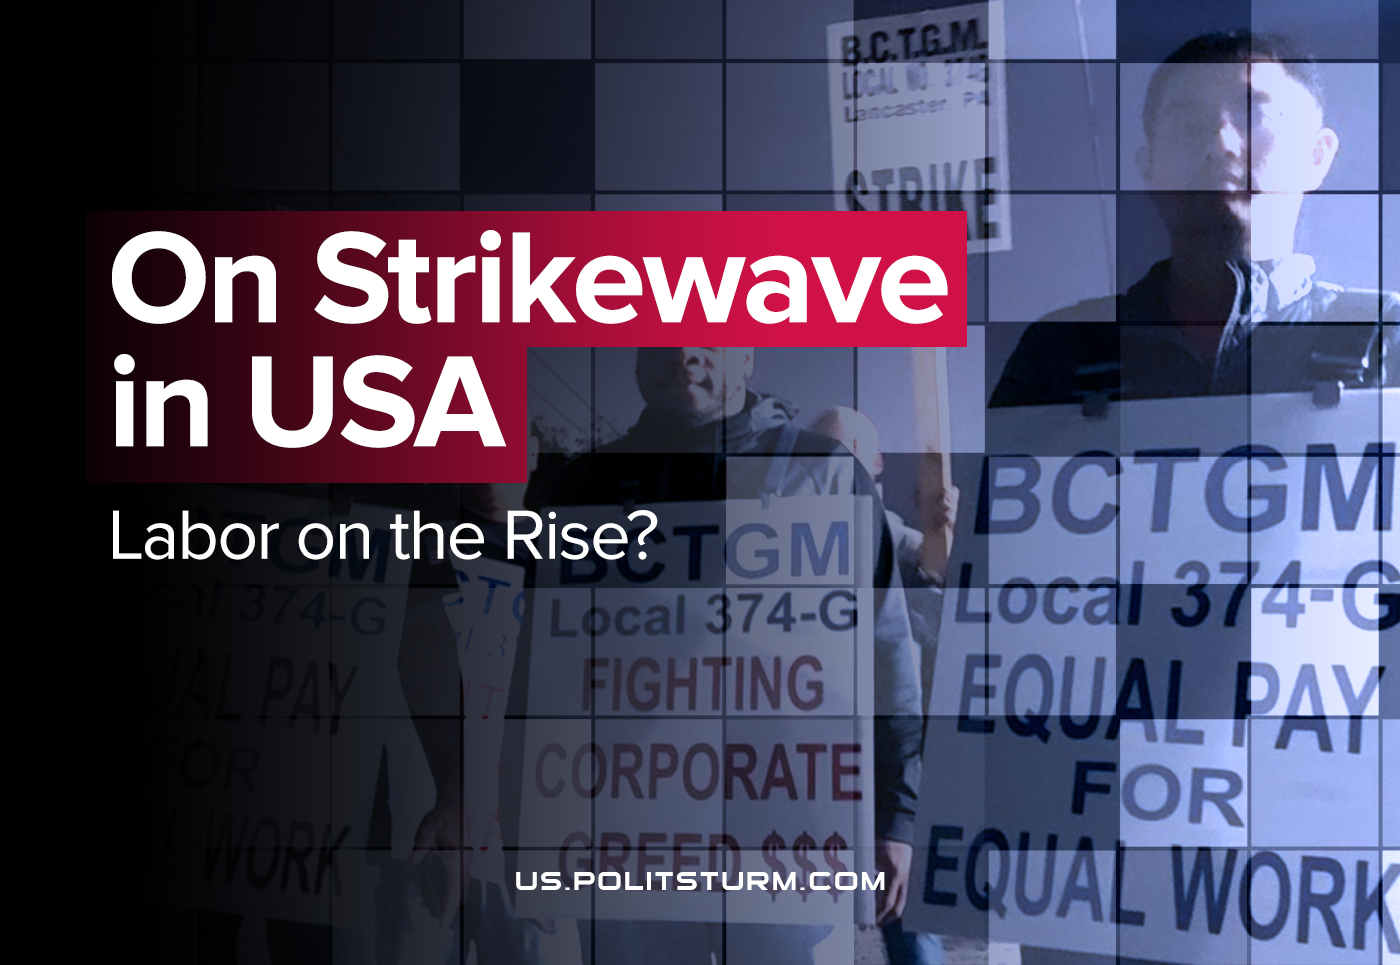 On Strikewave in USA: Labor on the Rise?